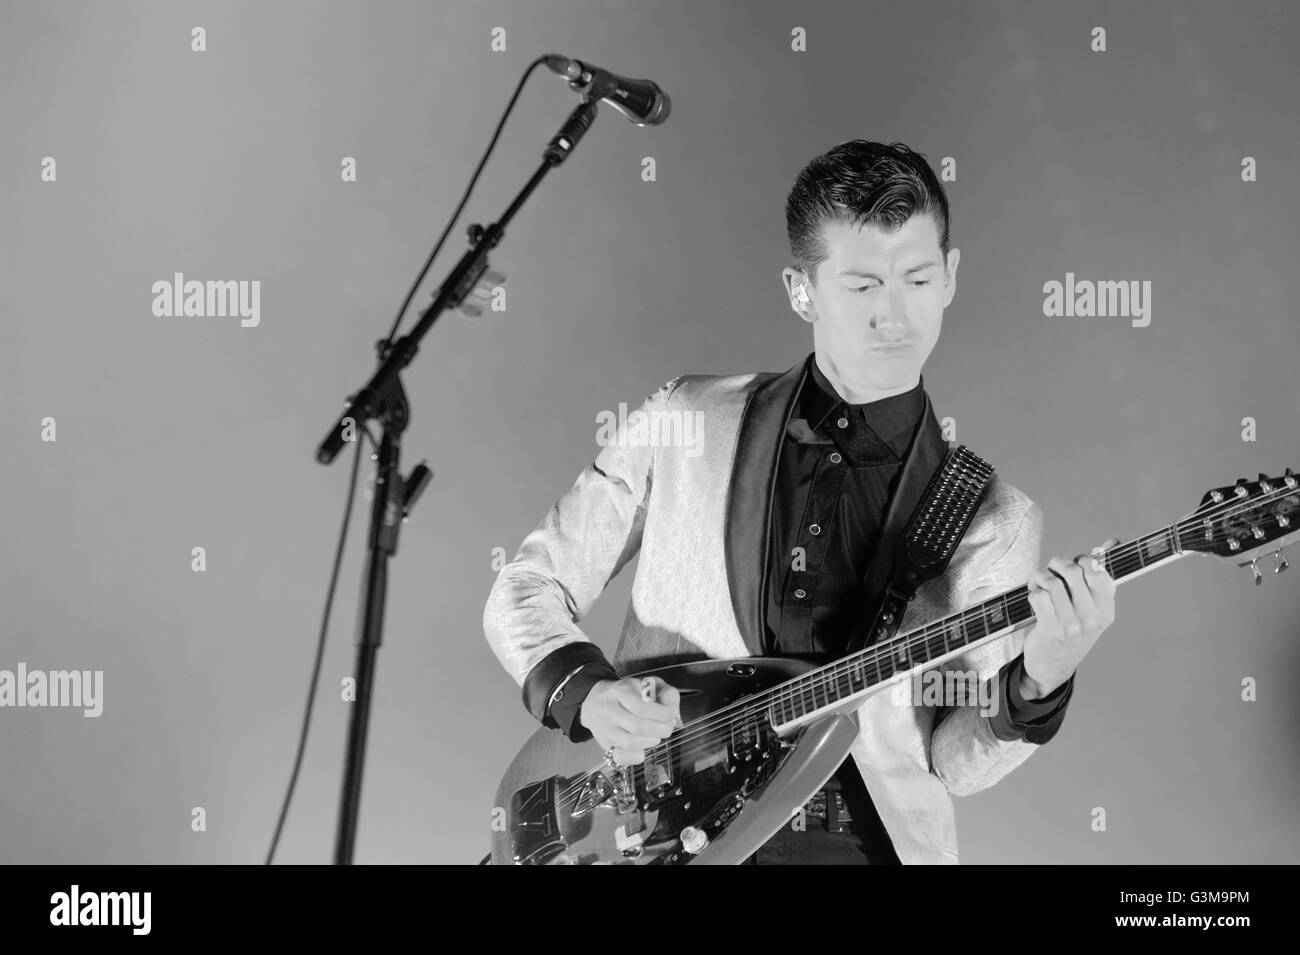 Alex Turner of English rock band Arctic Monkeys performs at Zurich Openair Festival 2013. - Stock Image